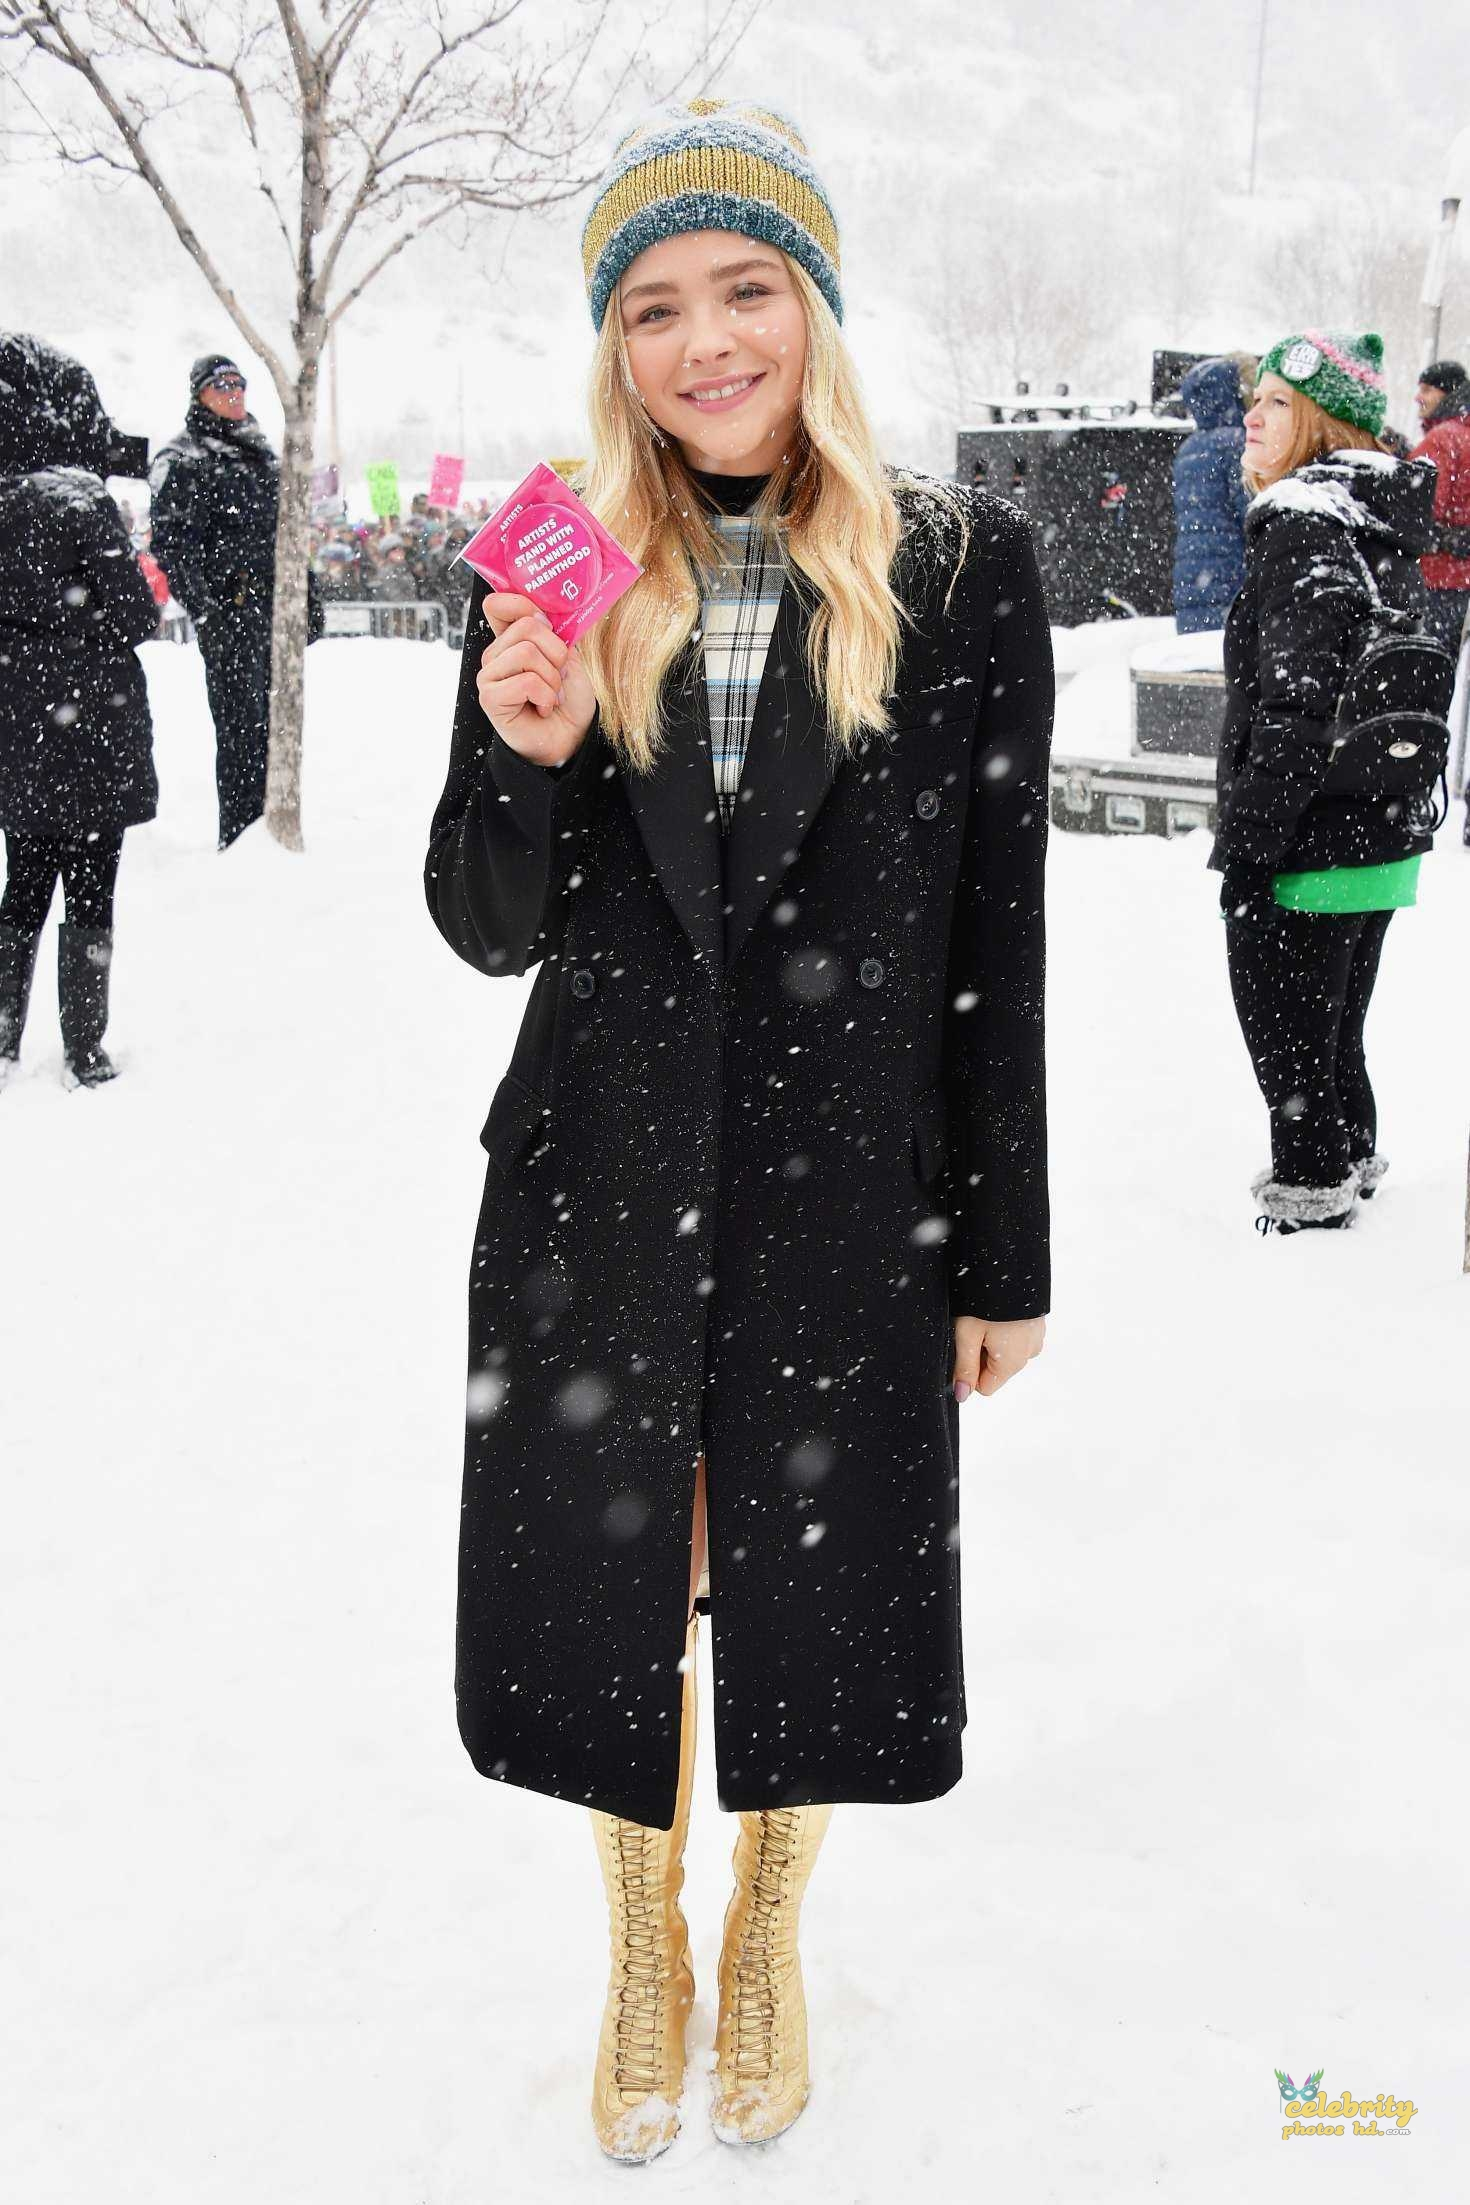 Chloe Moretz at Respect Rally while its Snowing in Park City (3)